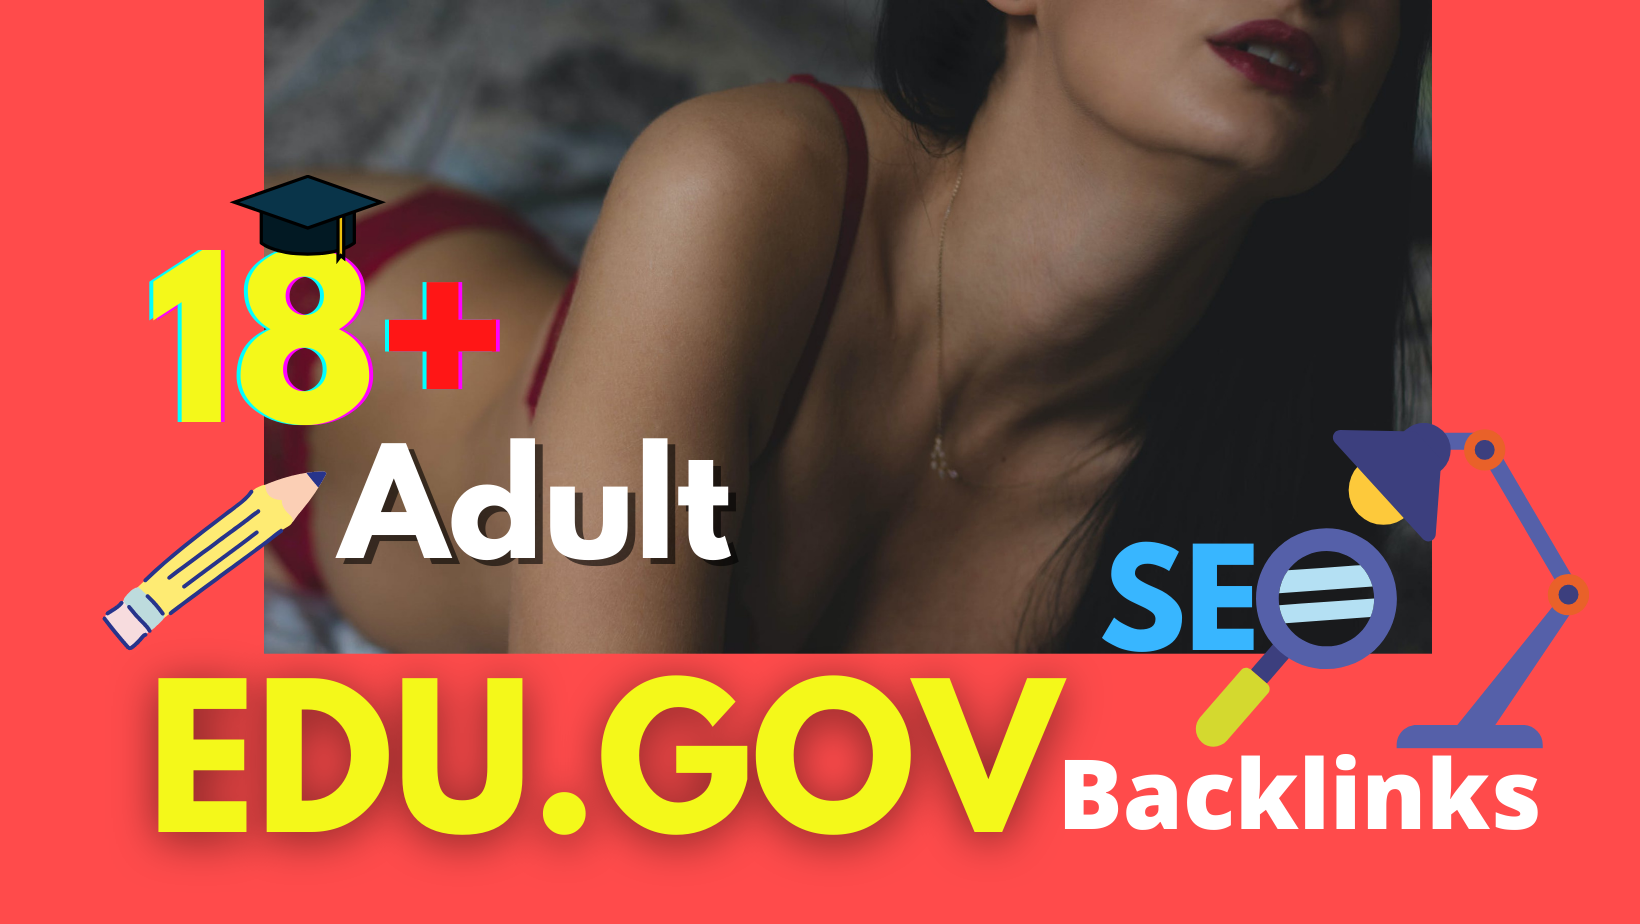 I will manually 100 EDU. GOV backlinks highDA-PA google Top ranking for your adult websites